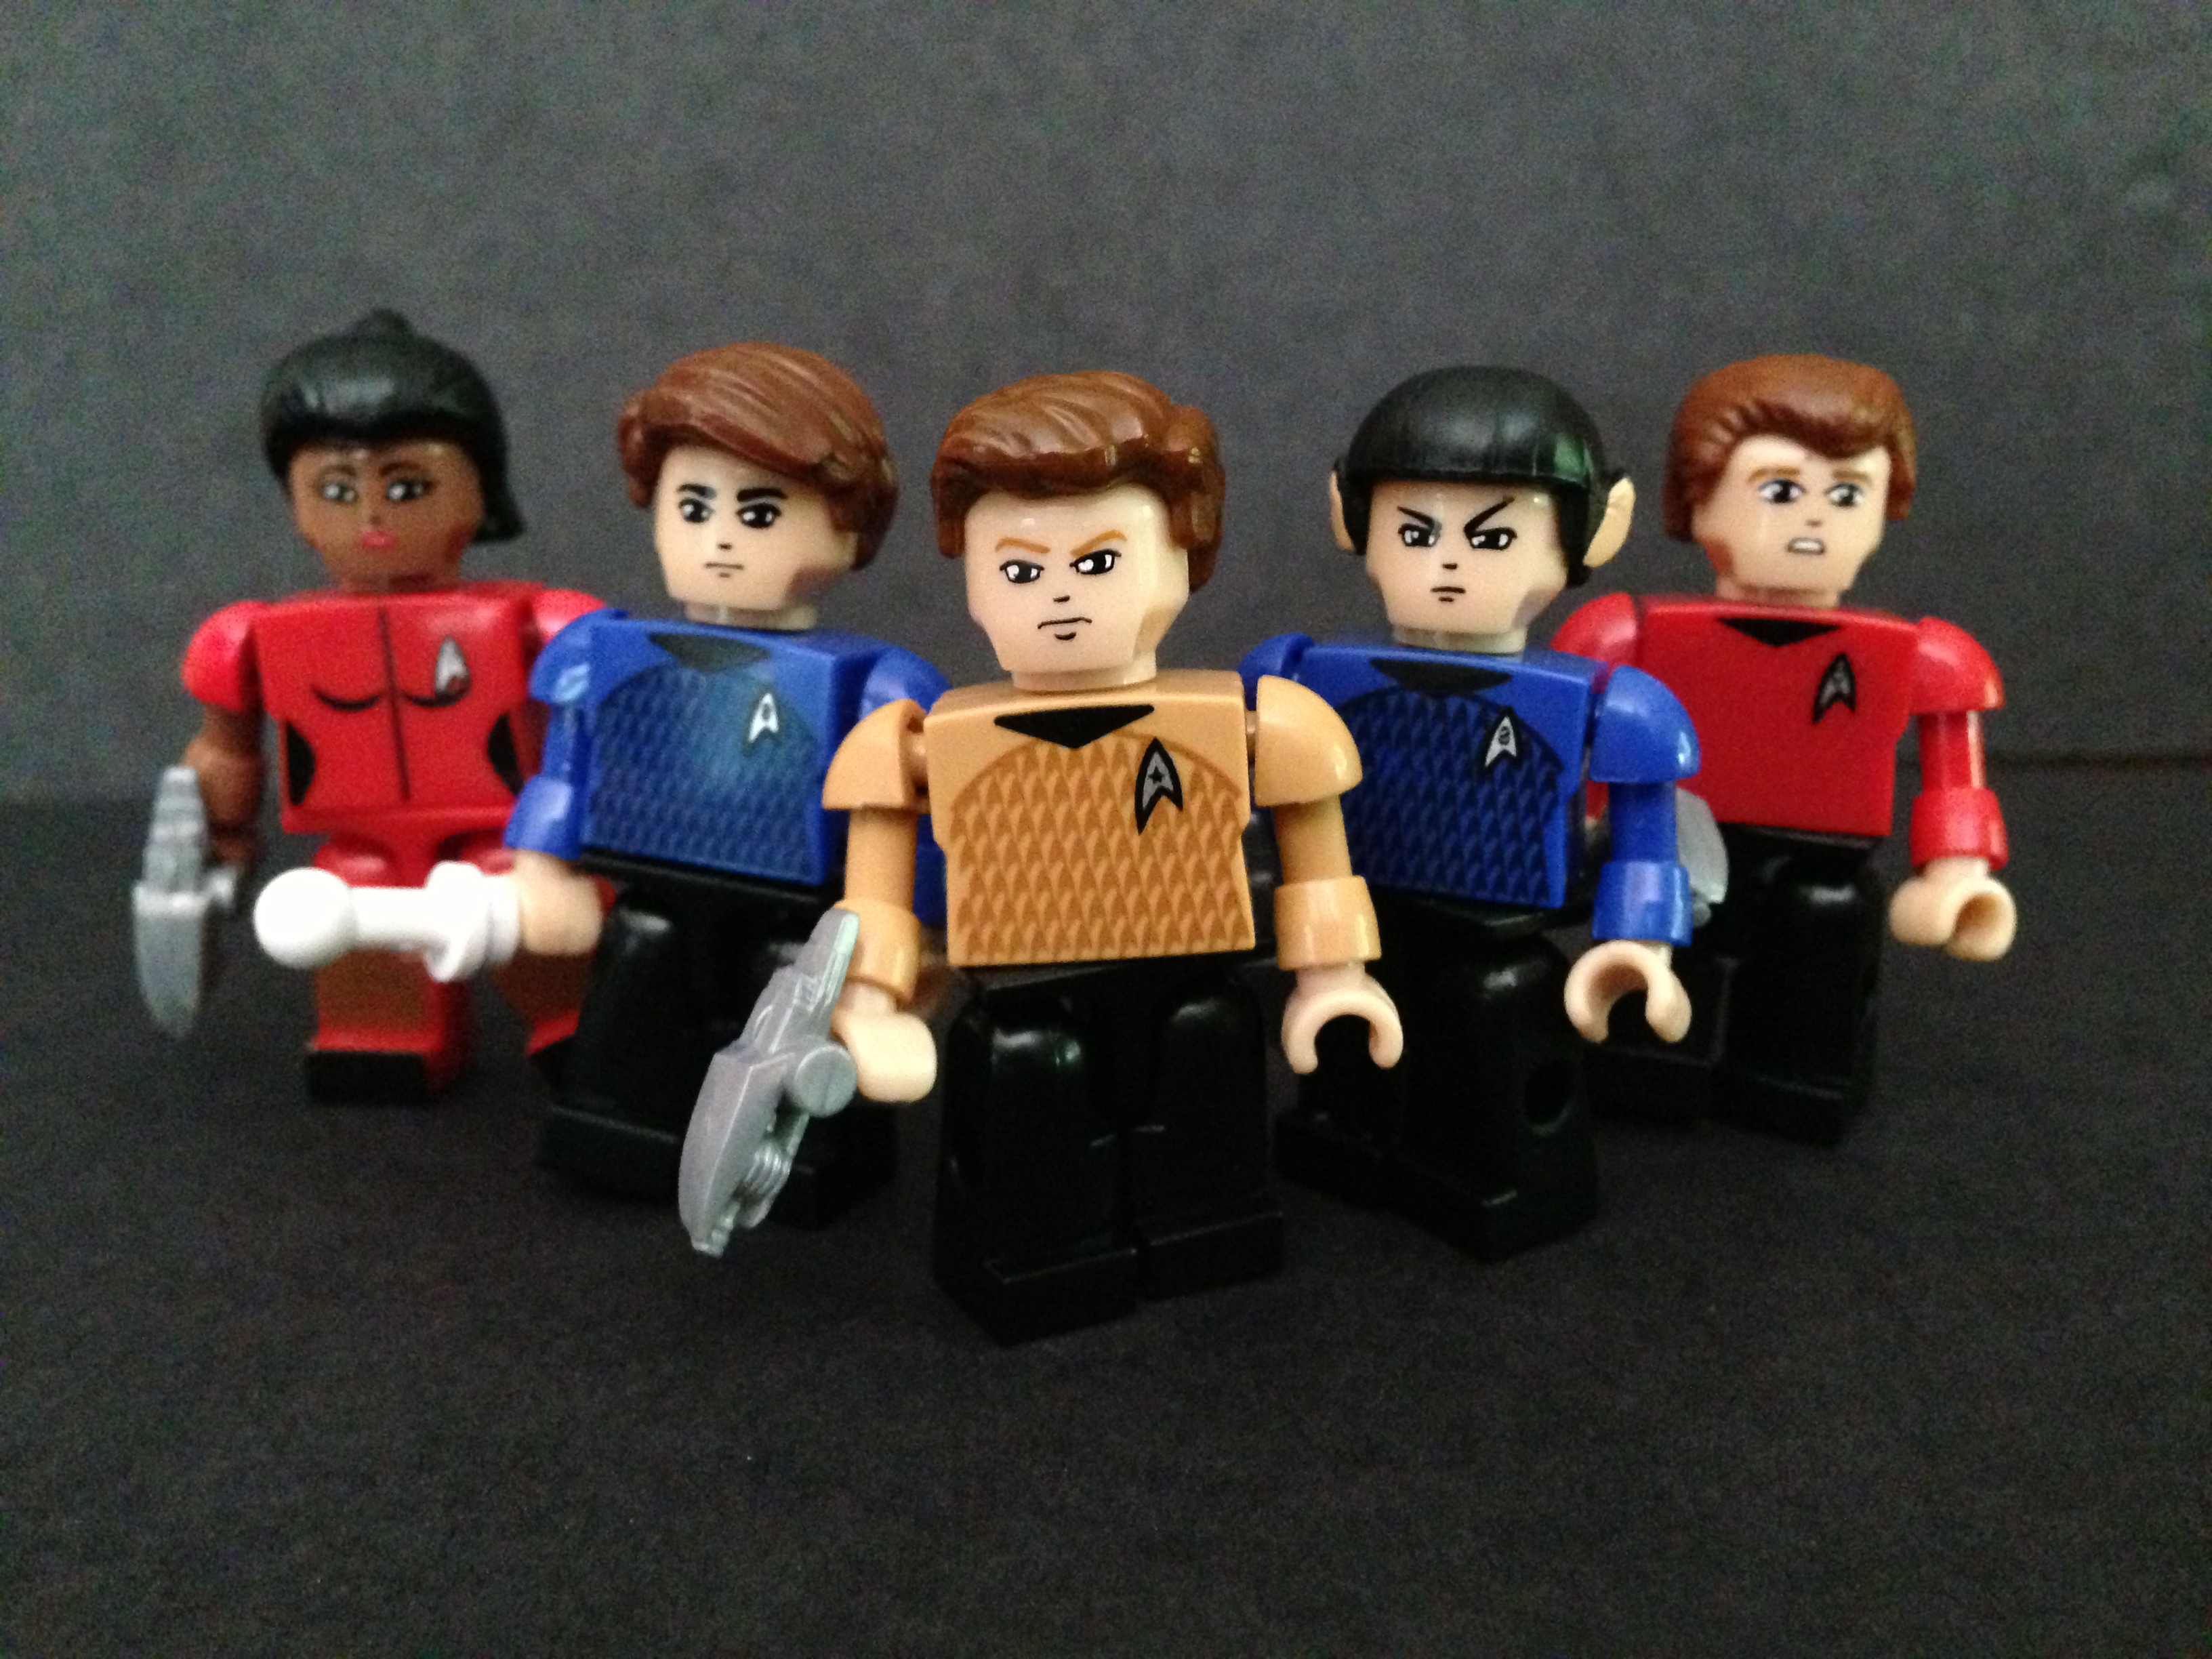 Star Trek KRE-O Construction Sets – A New Fan Goes Into Darkness